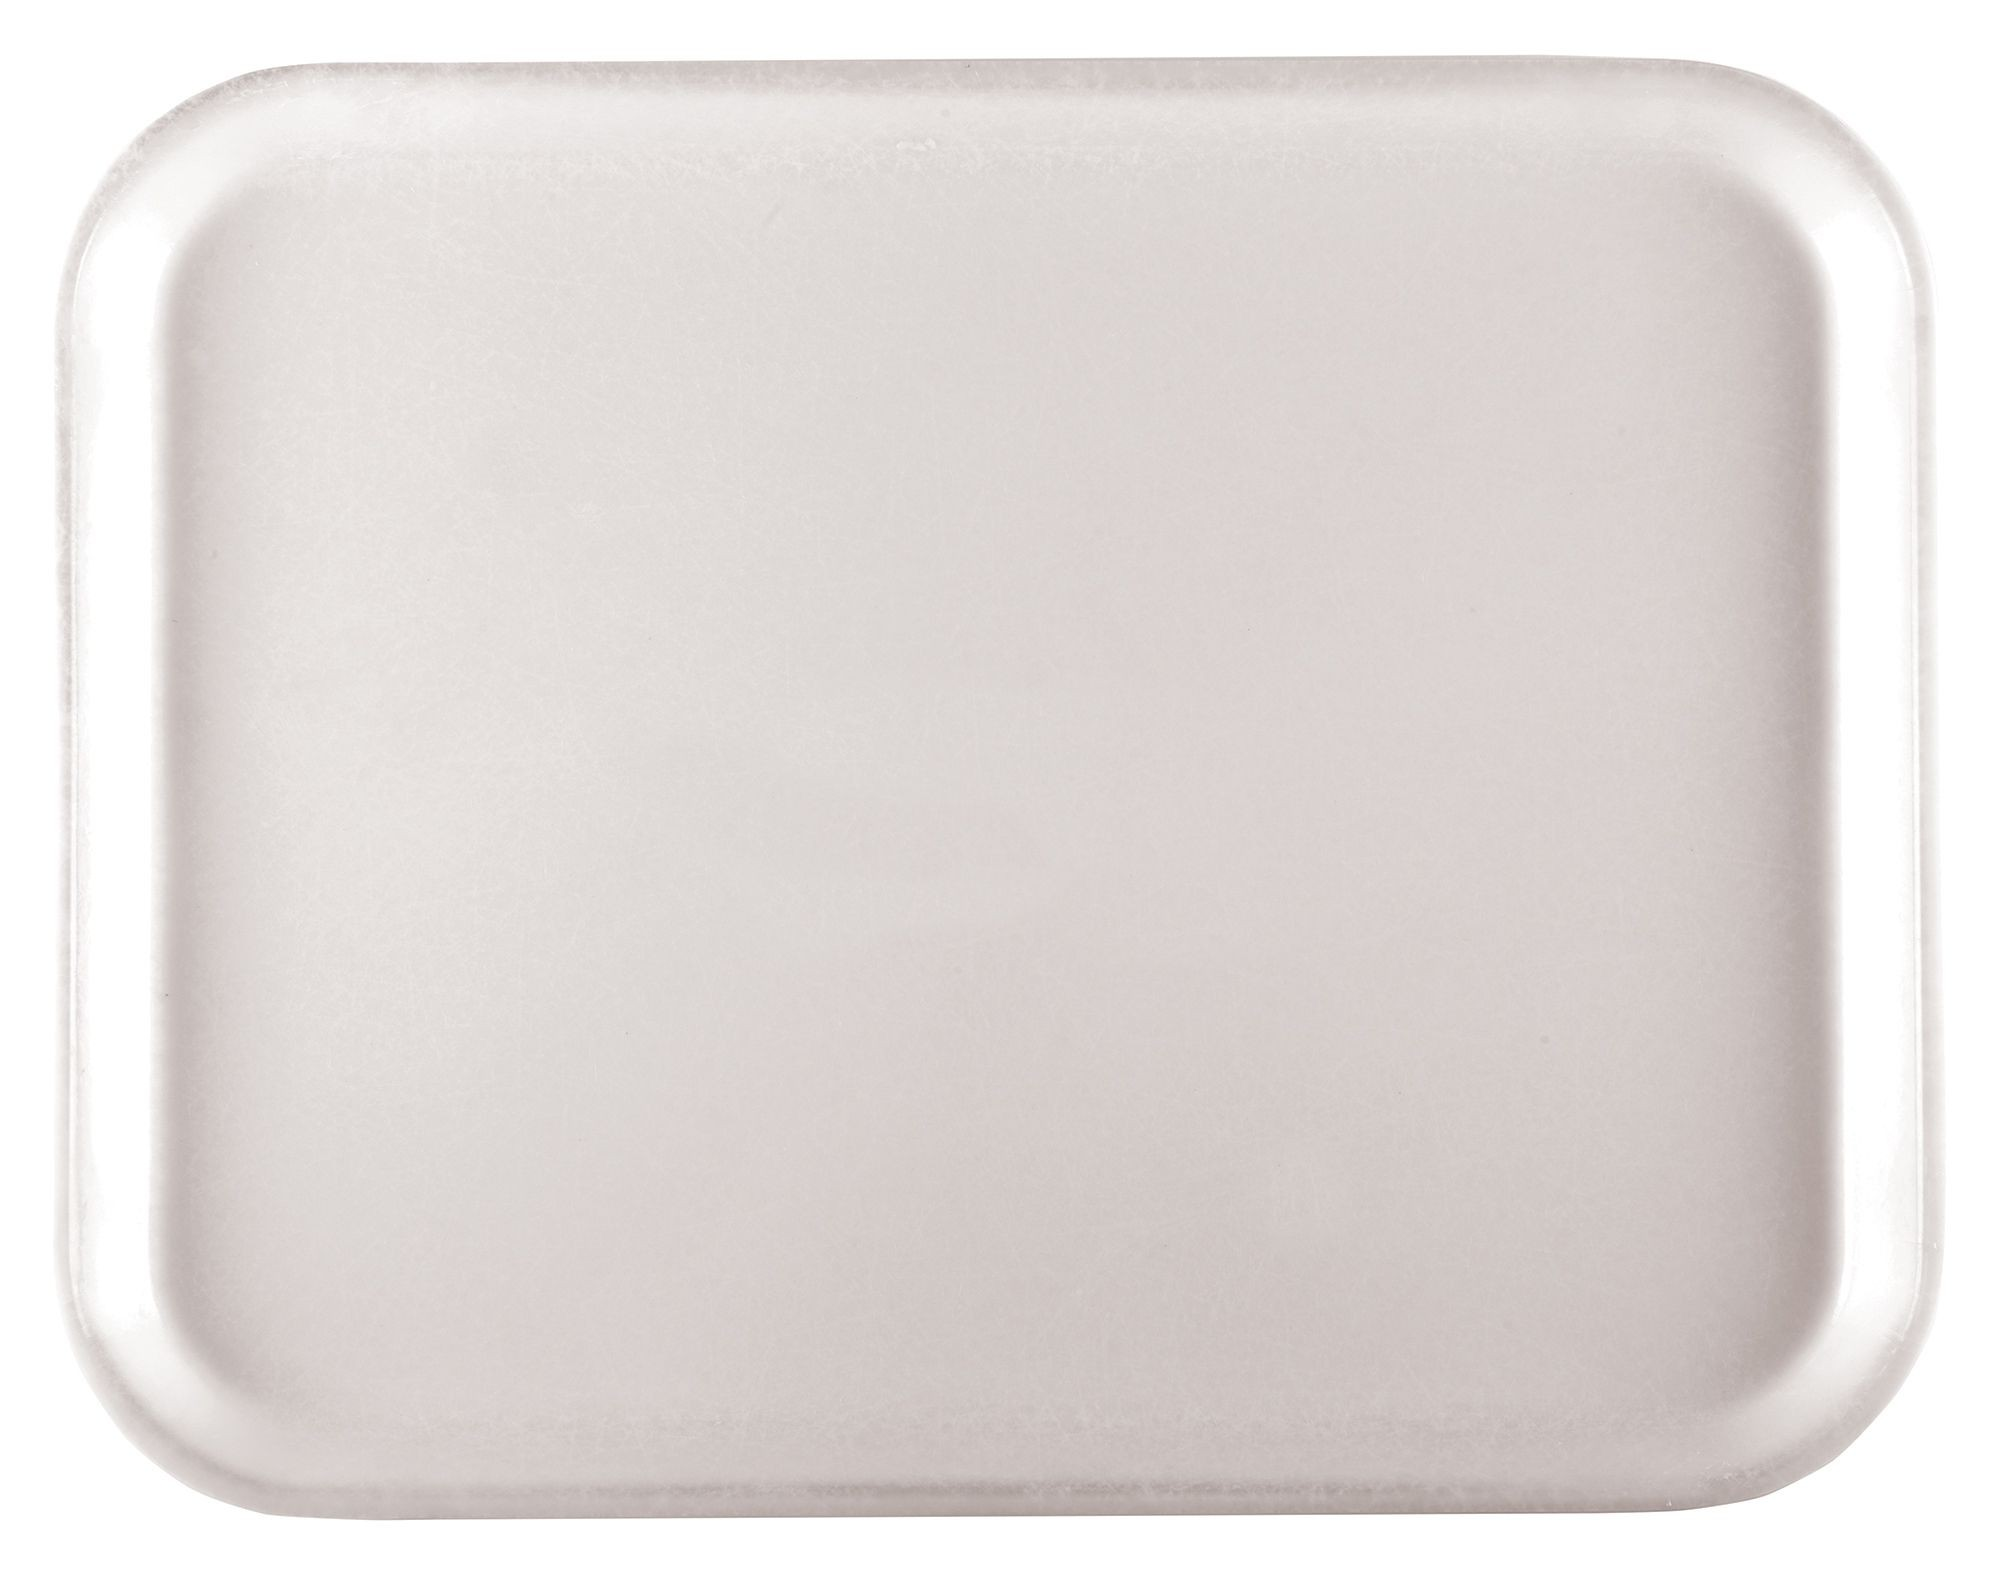 Fiberglass Tray, White, 15''x20'' Rectangular